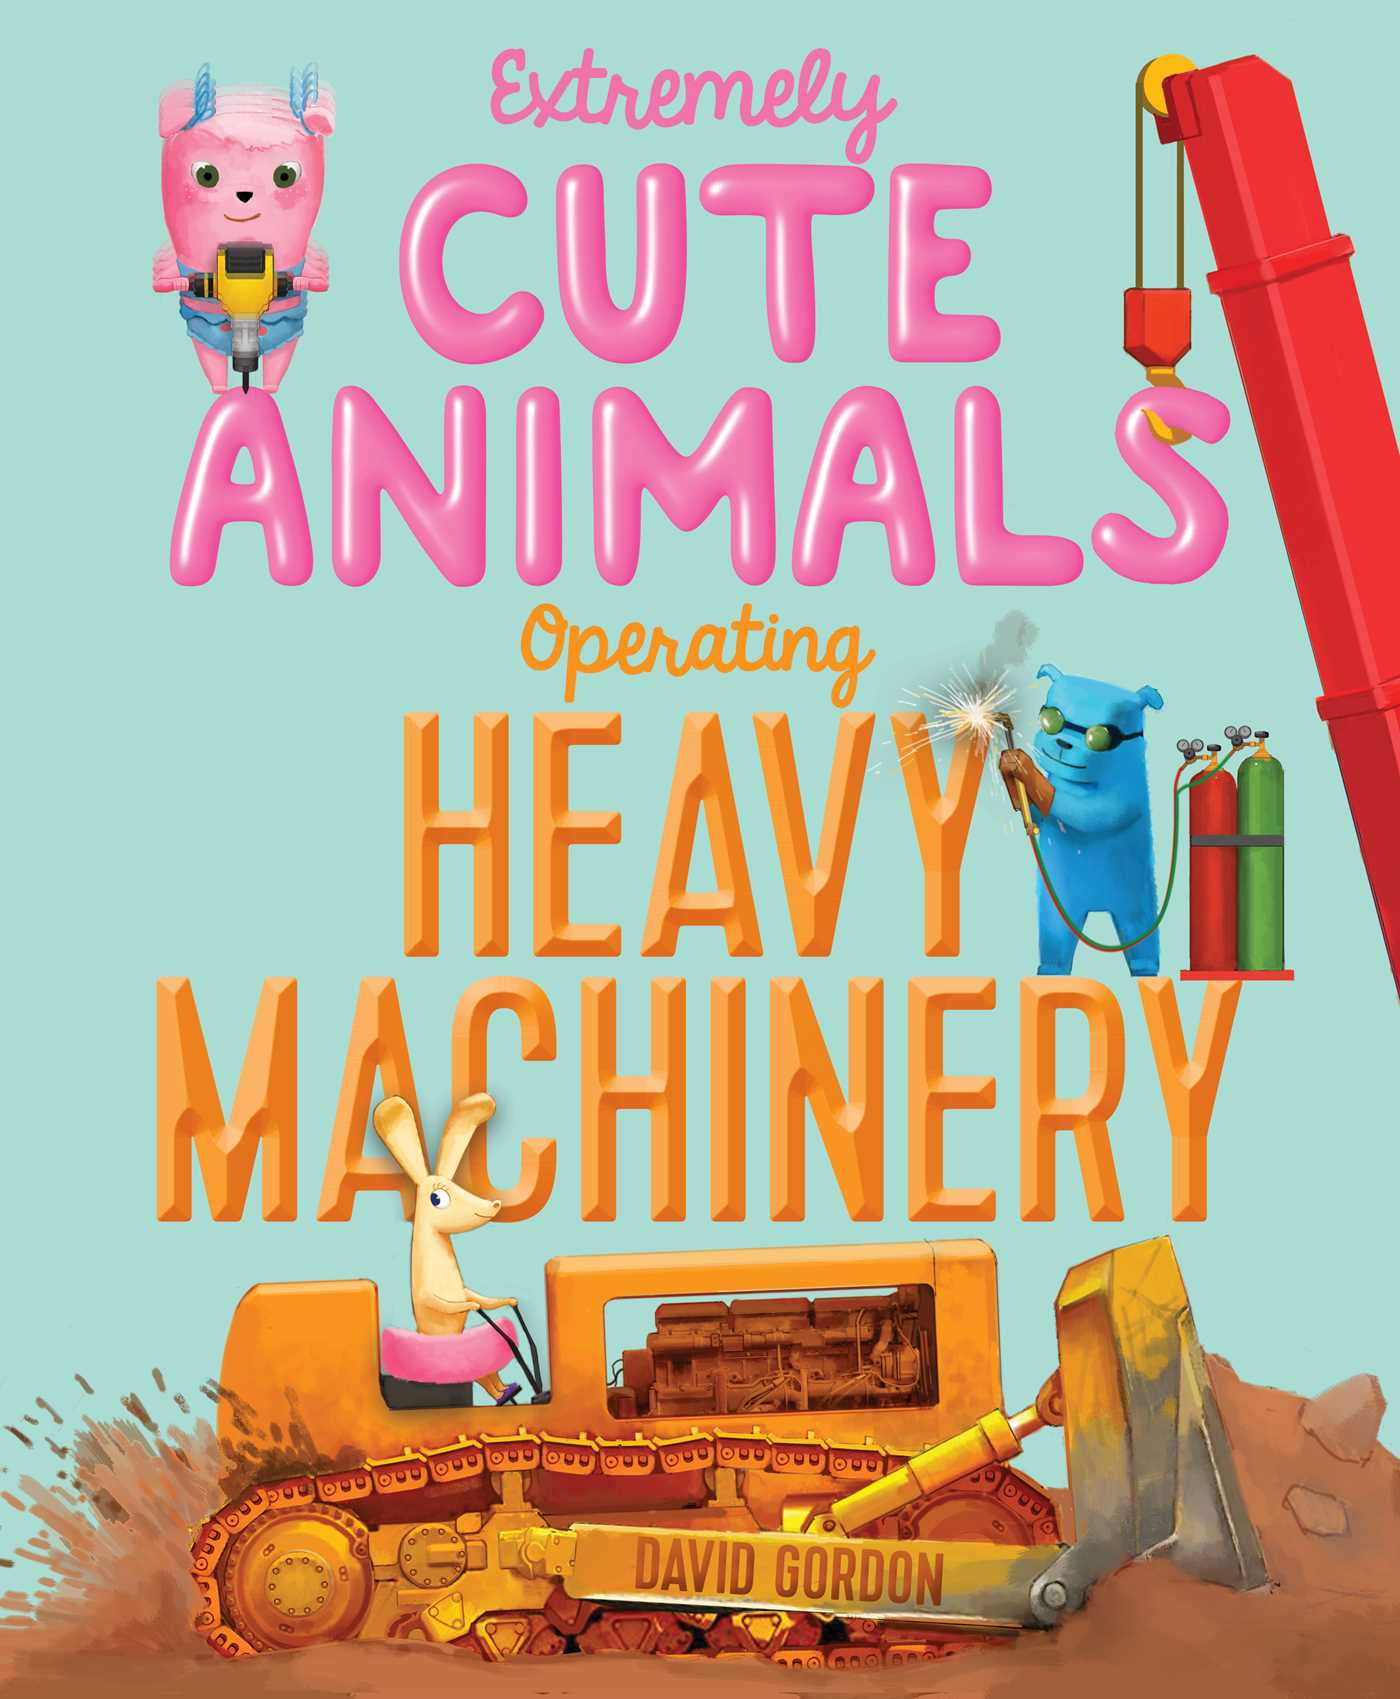 Extremely cute animals operating heavy machinery 9781416924418 hr